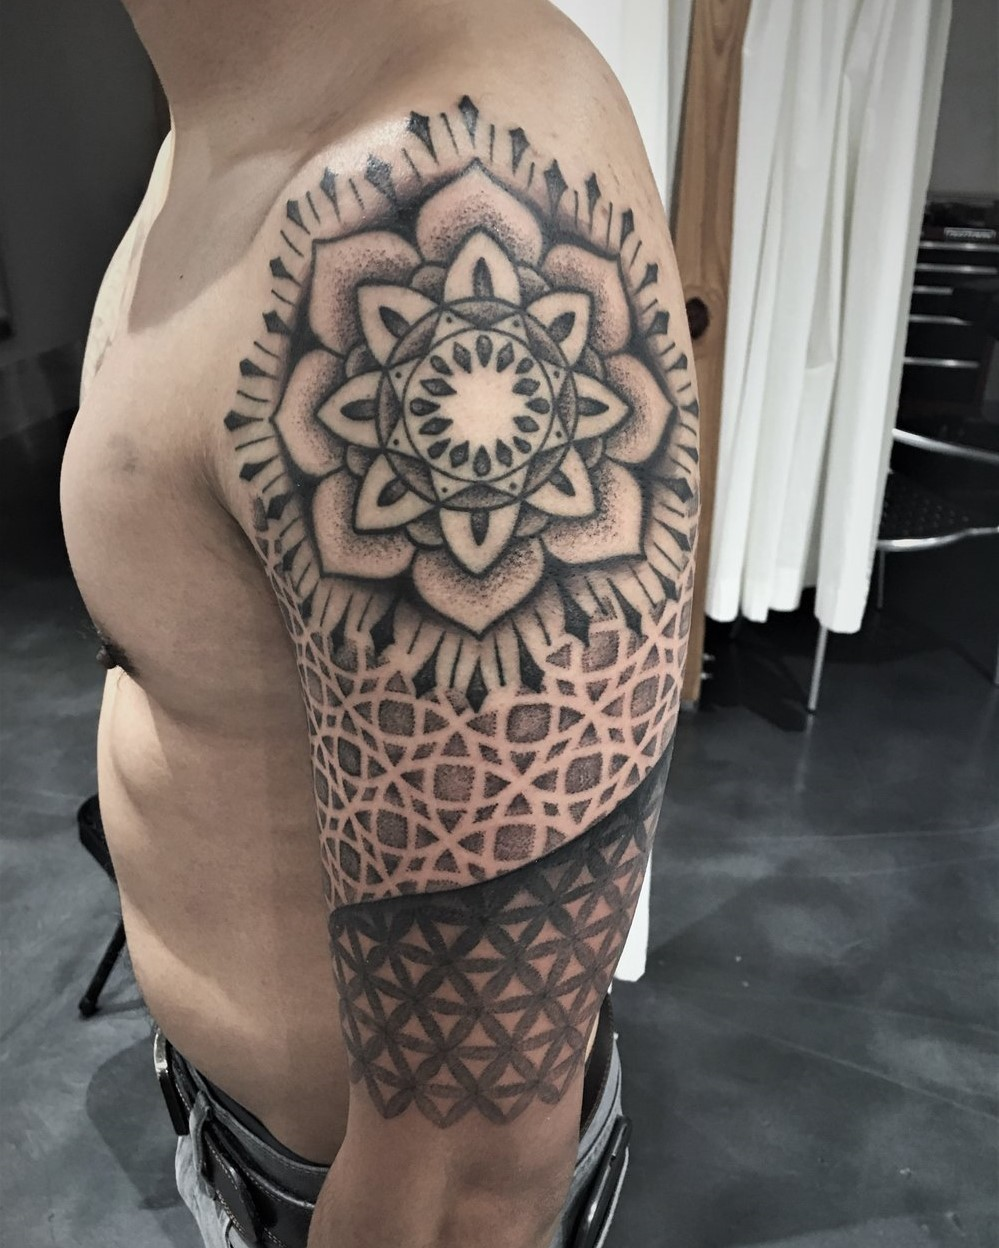 Black and Grey Mandala Sleeve done by tattoo artist, Alan Lott. Tattoo done at Sacred Mandala Studios in Durham, North Carolina.